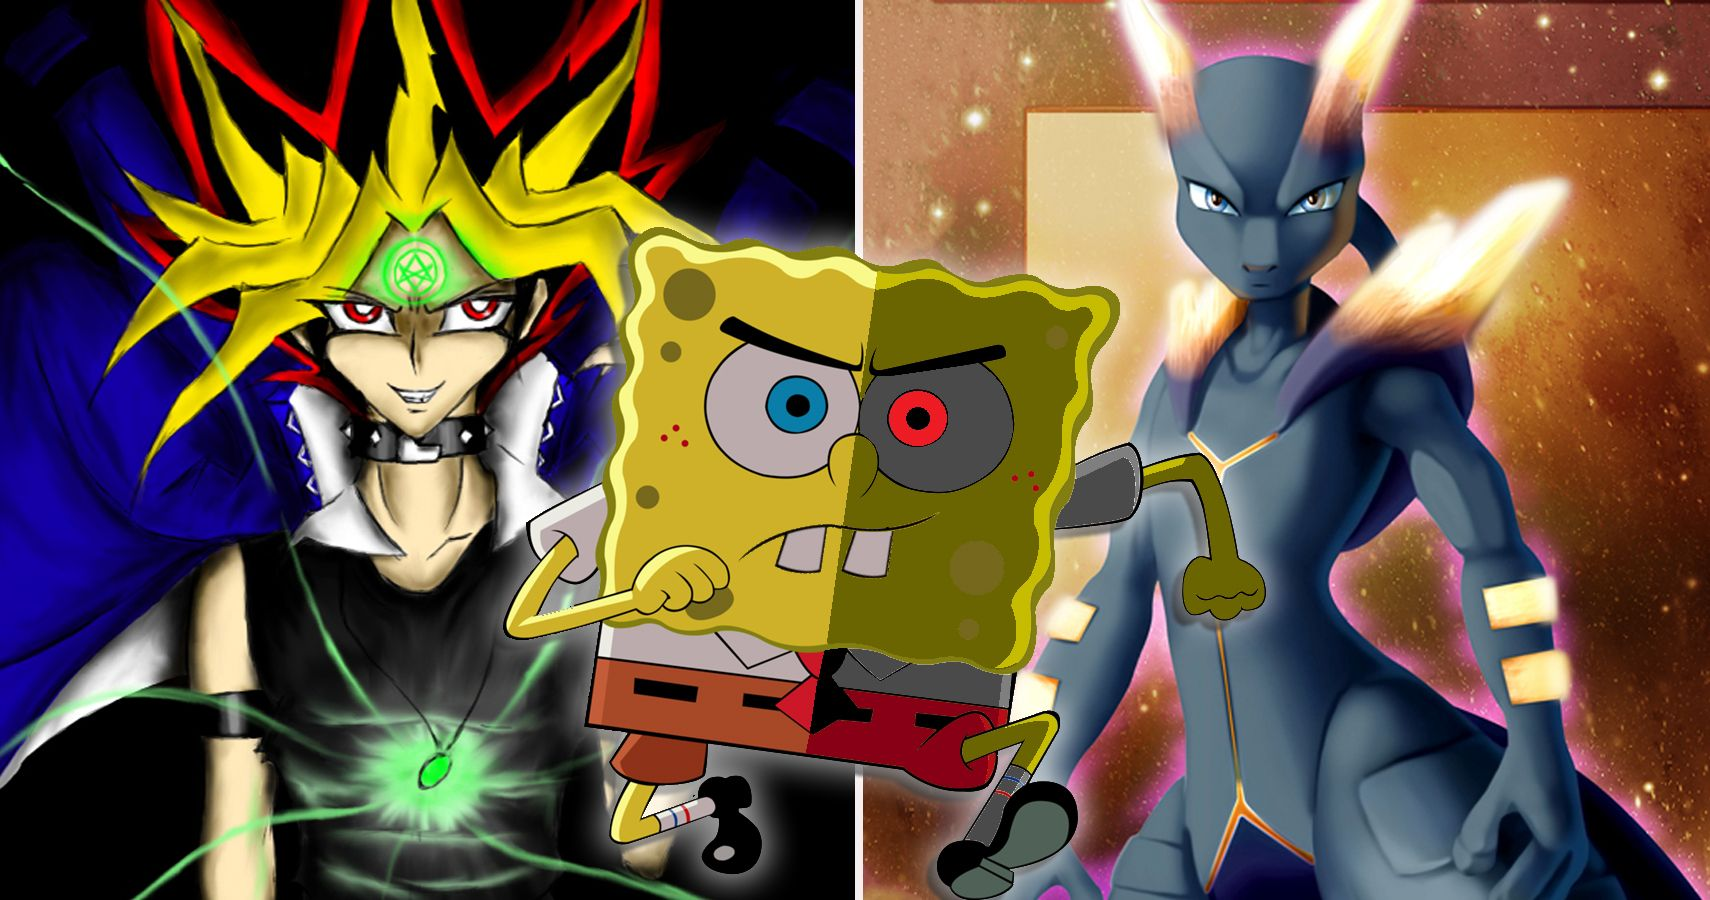 28 Classic Cartoon Characters From The 90s Reimagined As Villains